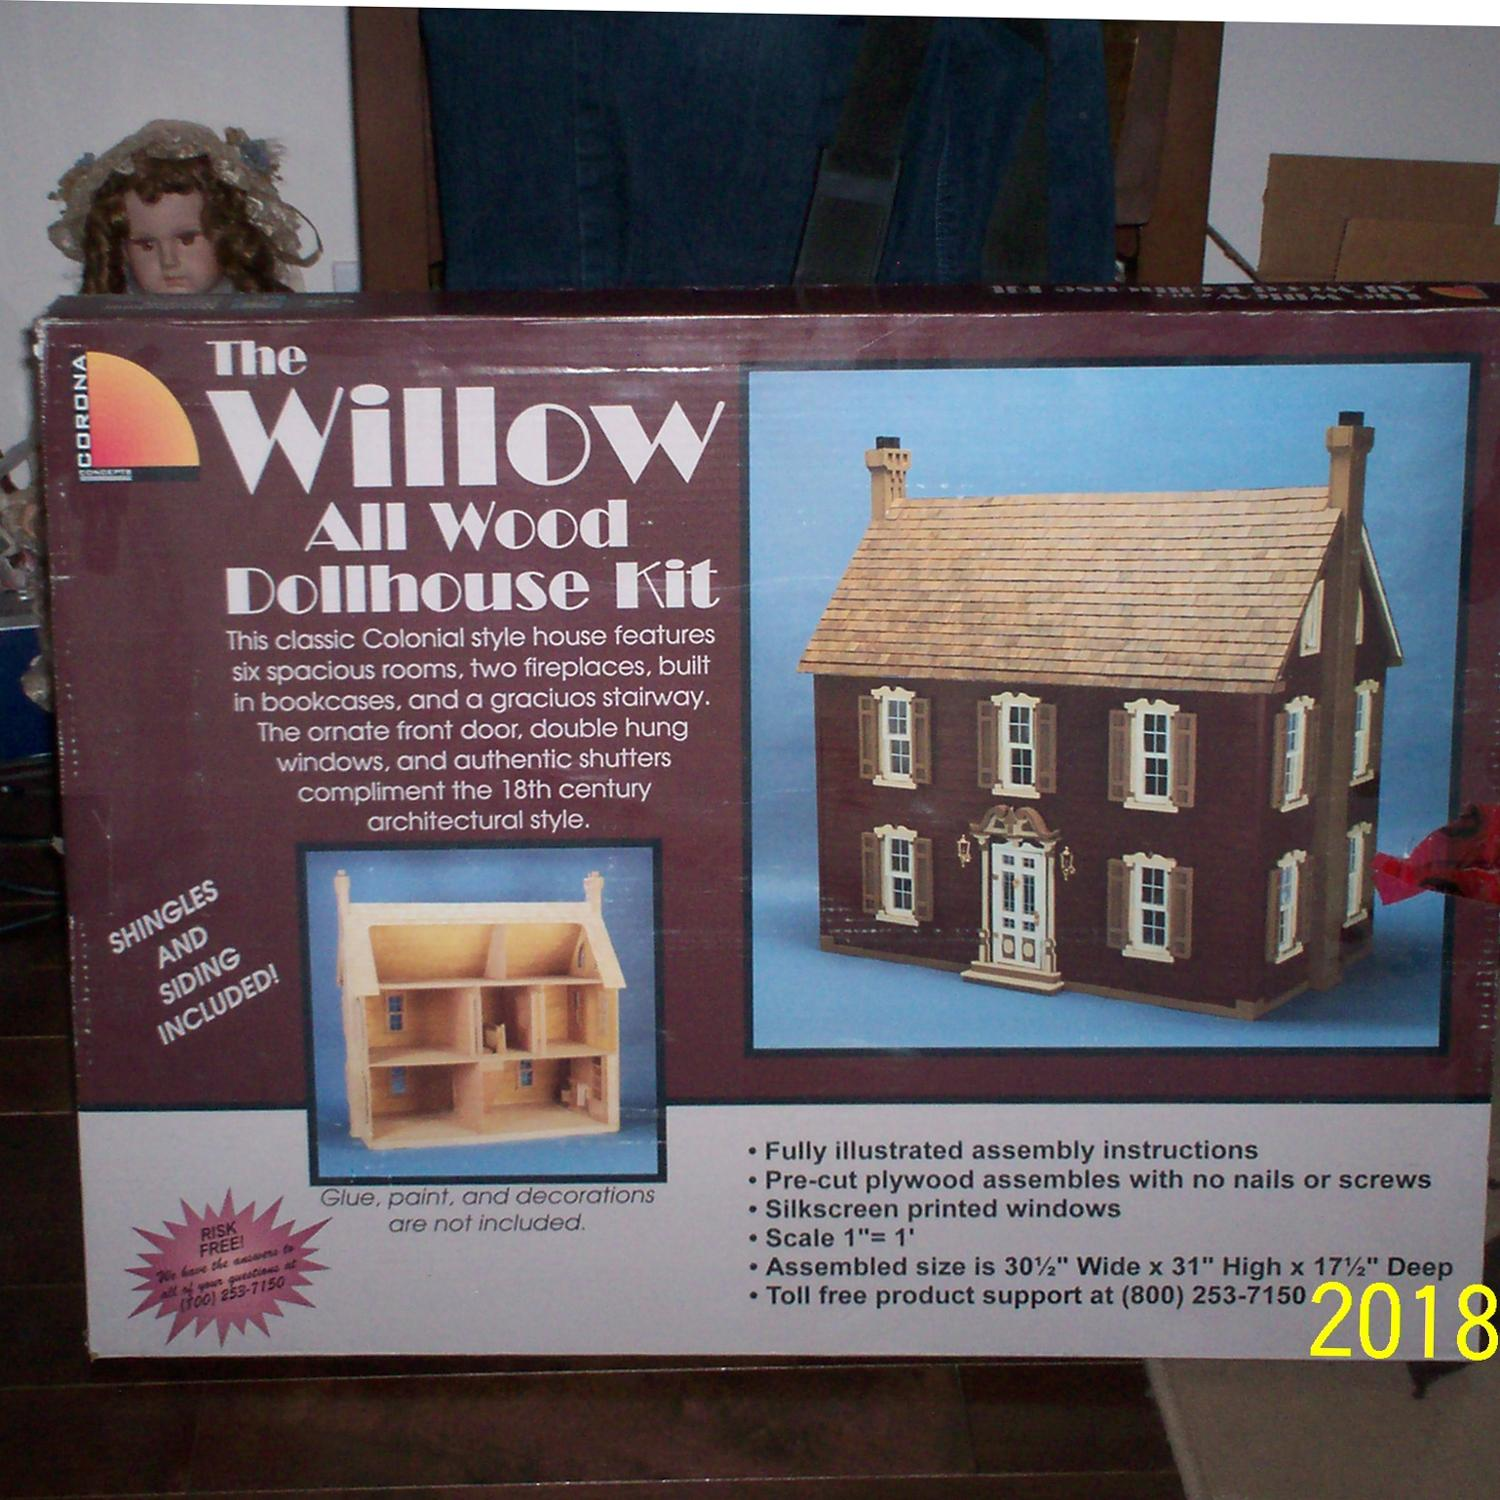 The Willow Dollhouse Kit